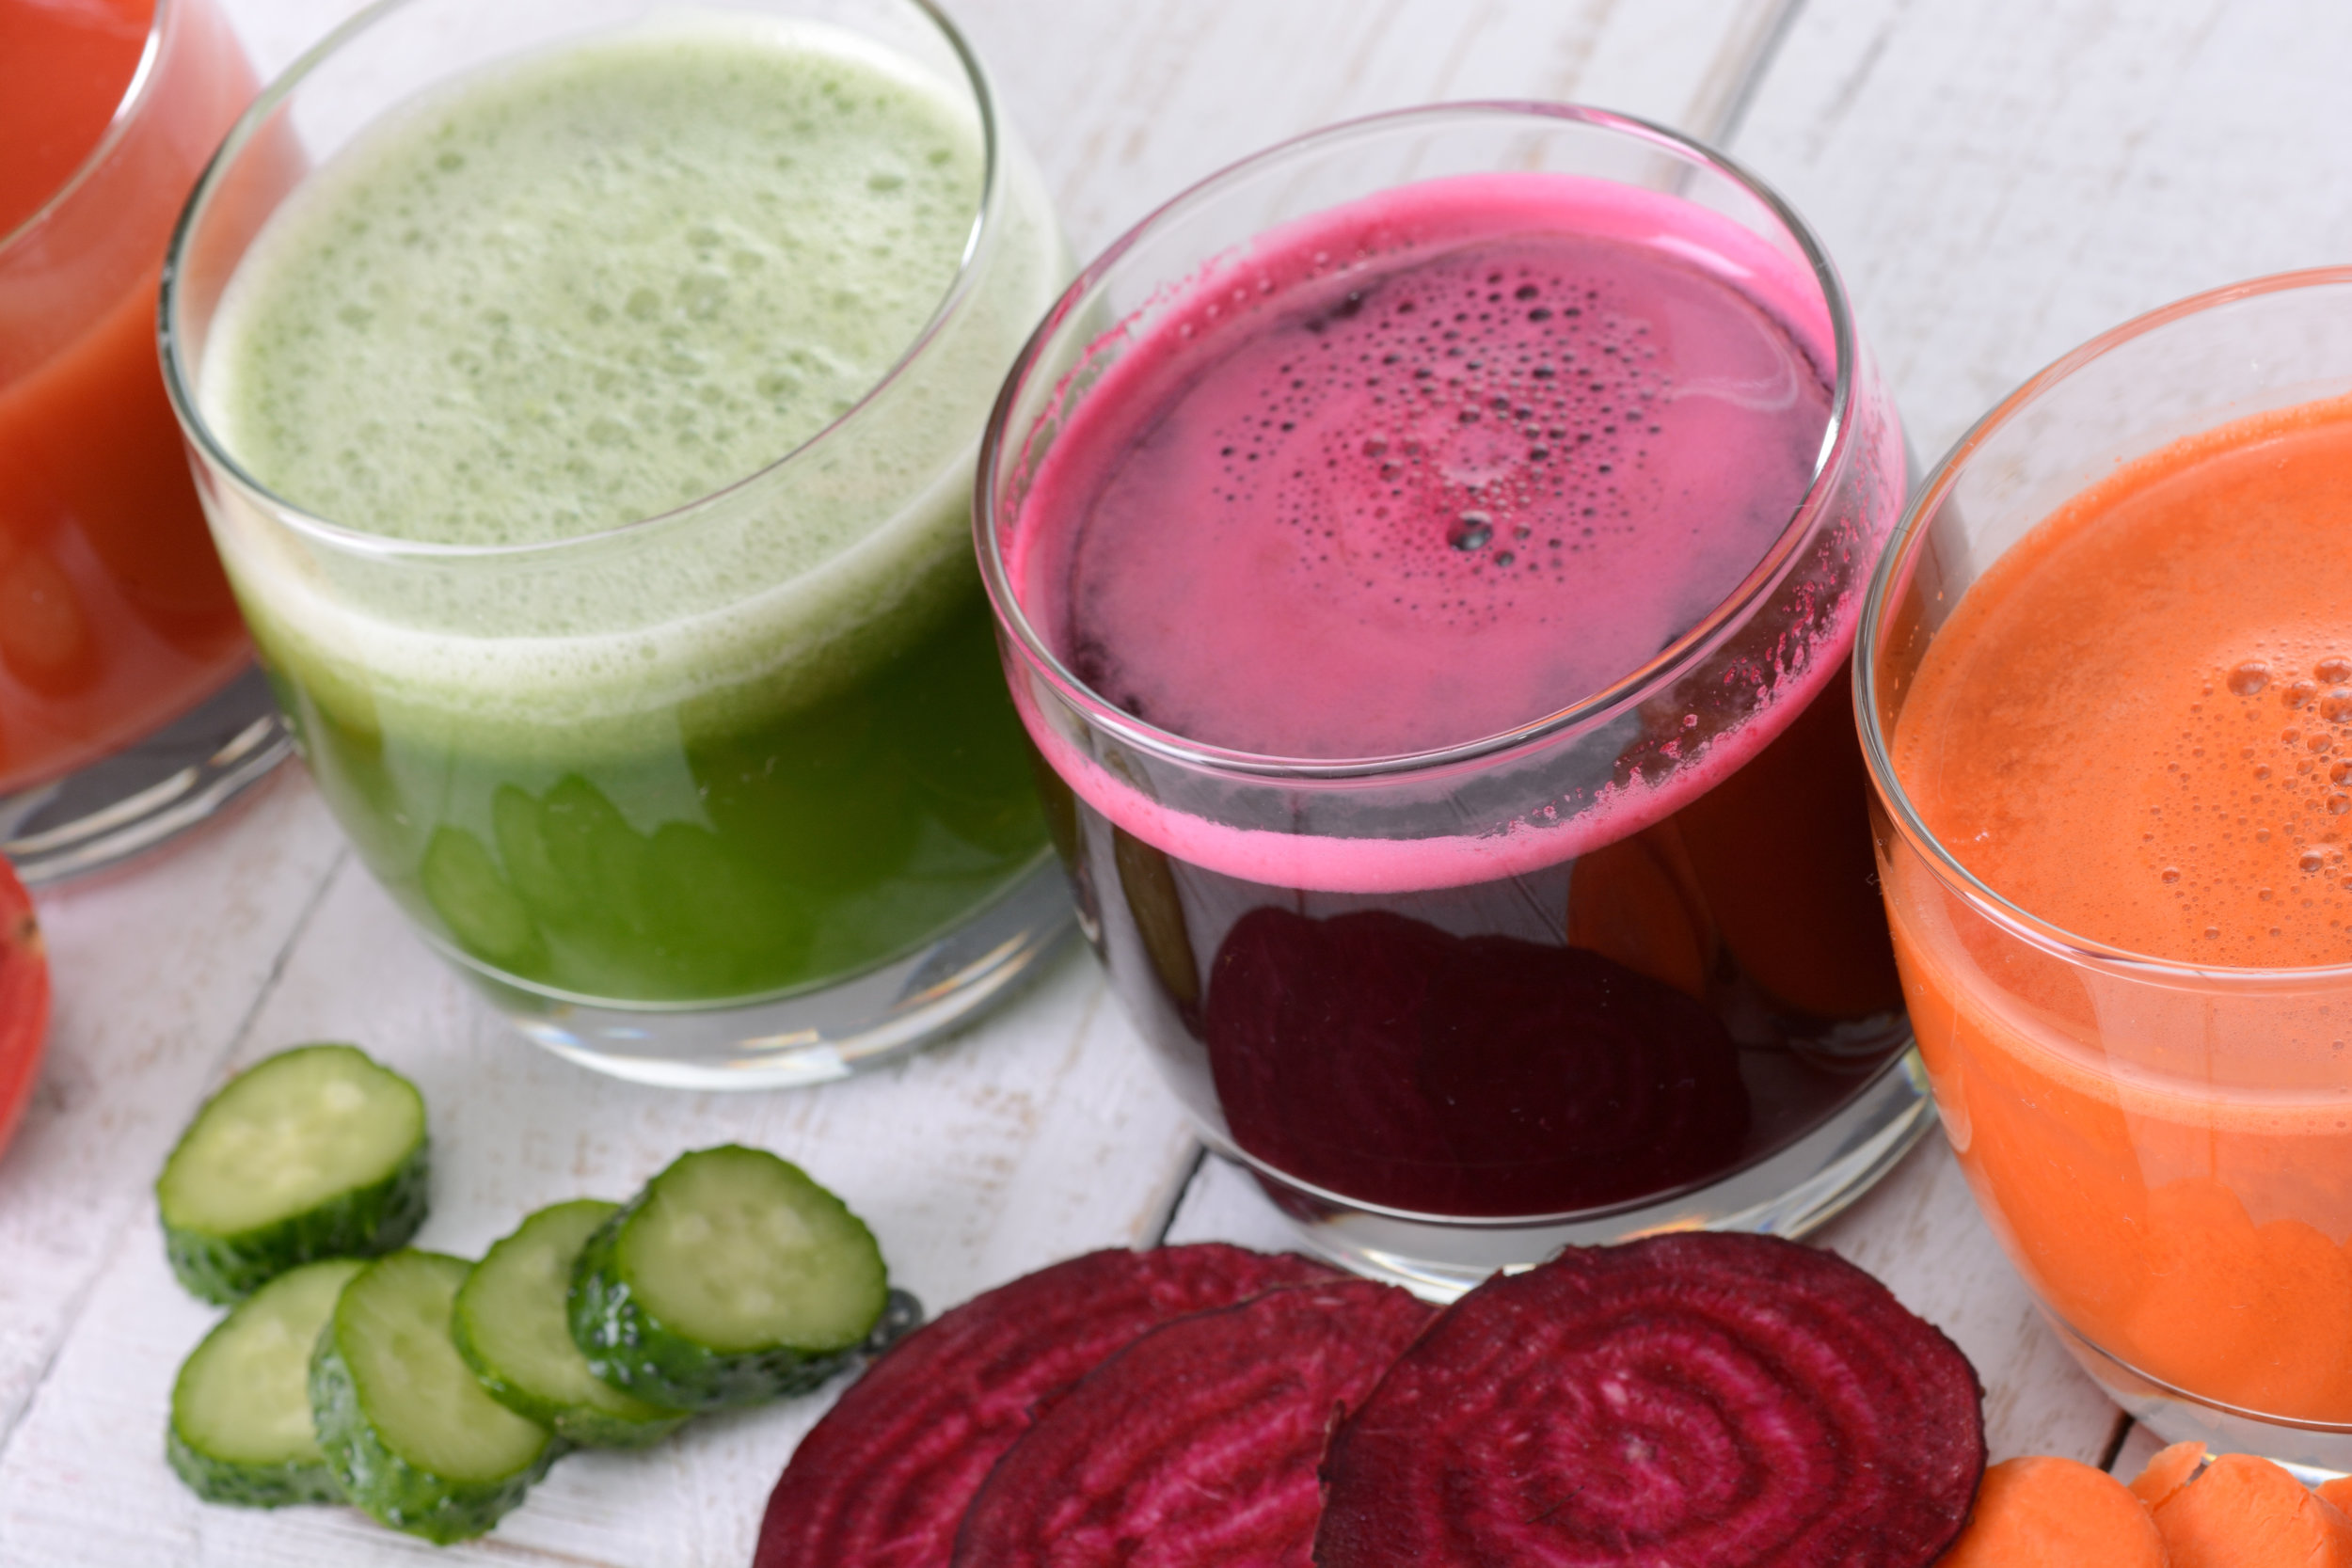 vegetable juices green purple orange healthy.jpg